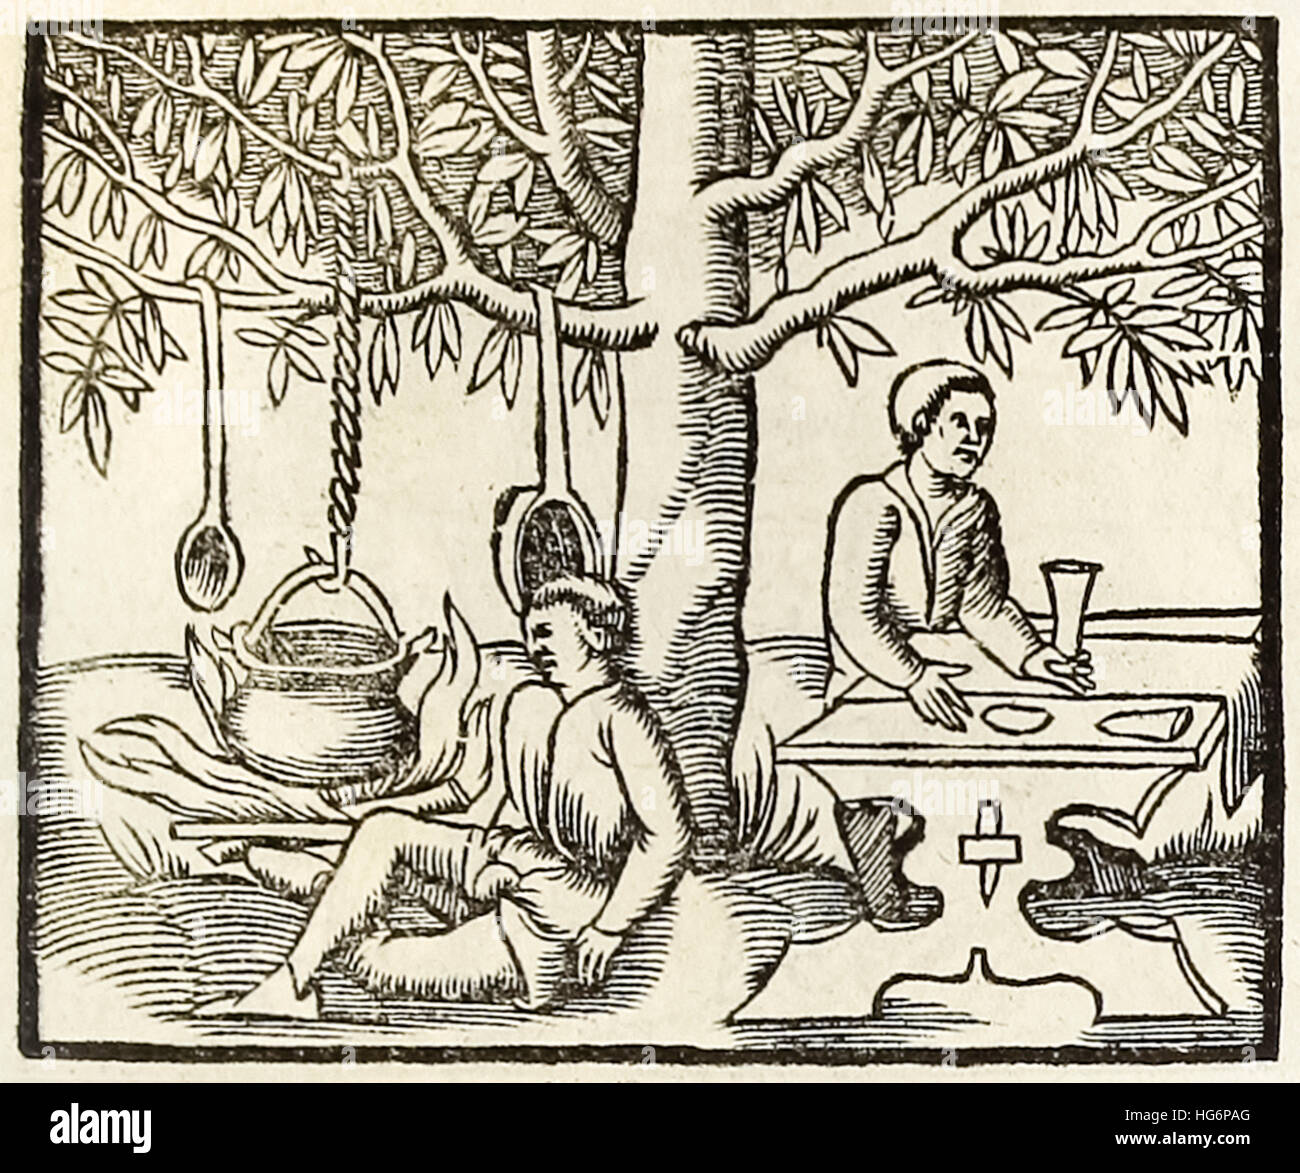 Cooking pot and waiting diner, woodcut from 1550 edition of 'Cosmographia' by  Sebastian Munster (1488-1552). See - Stock Image